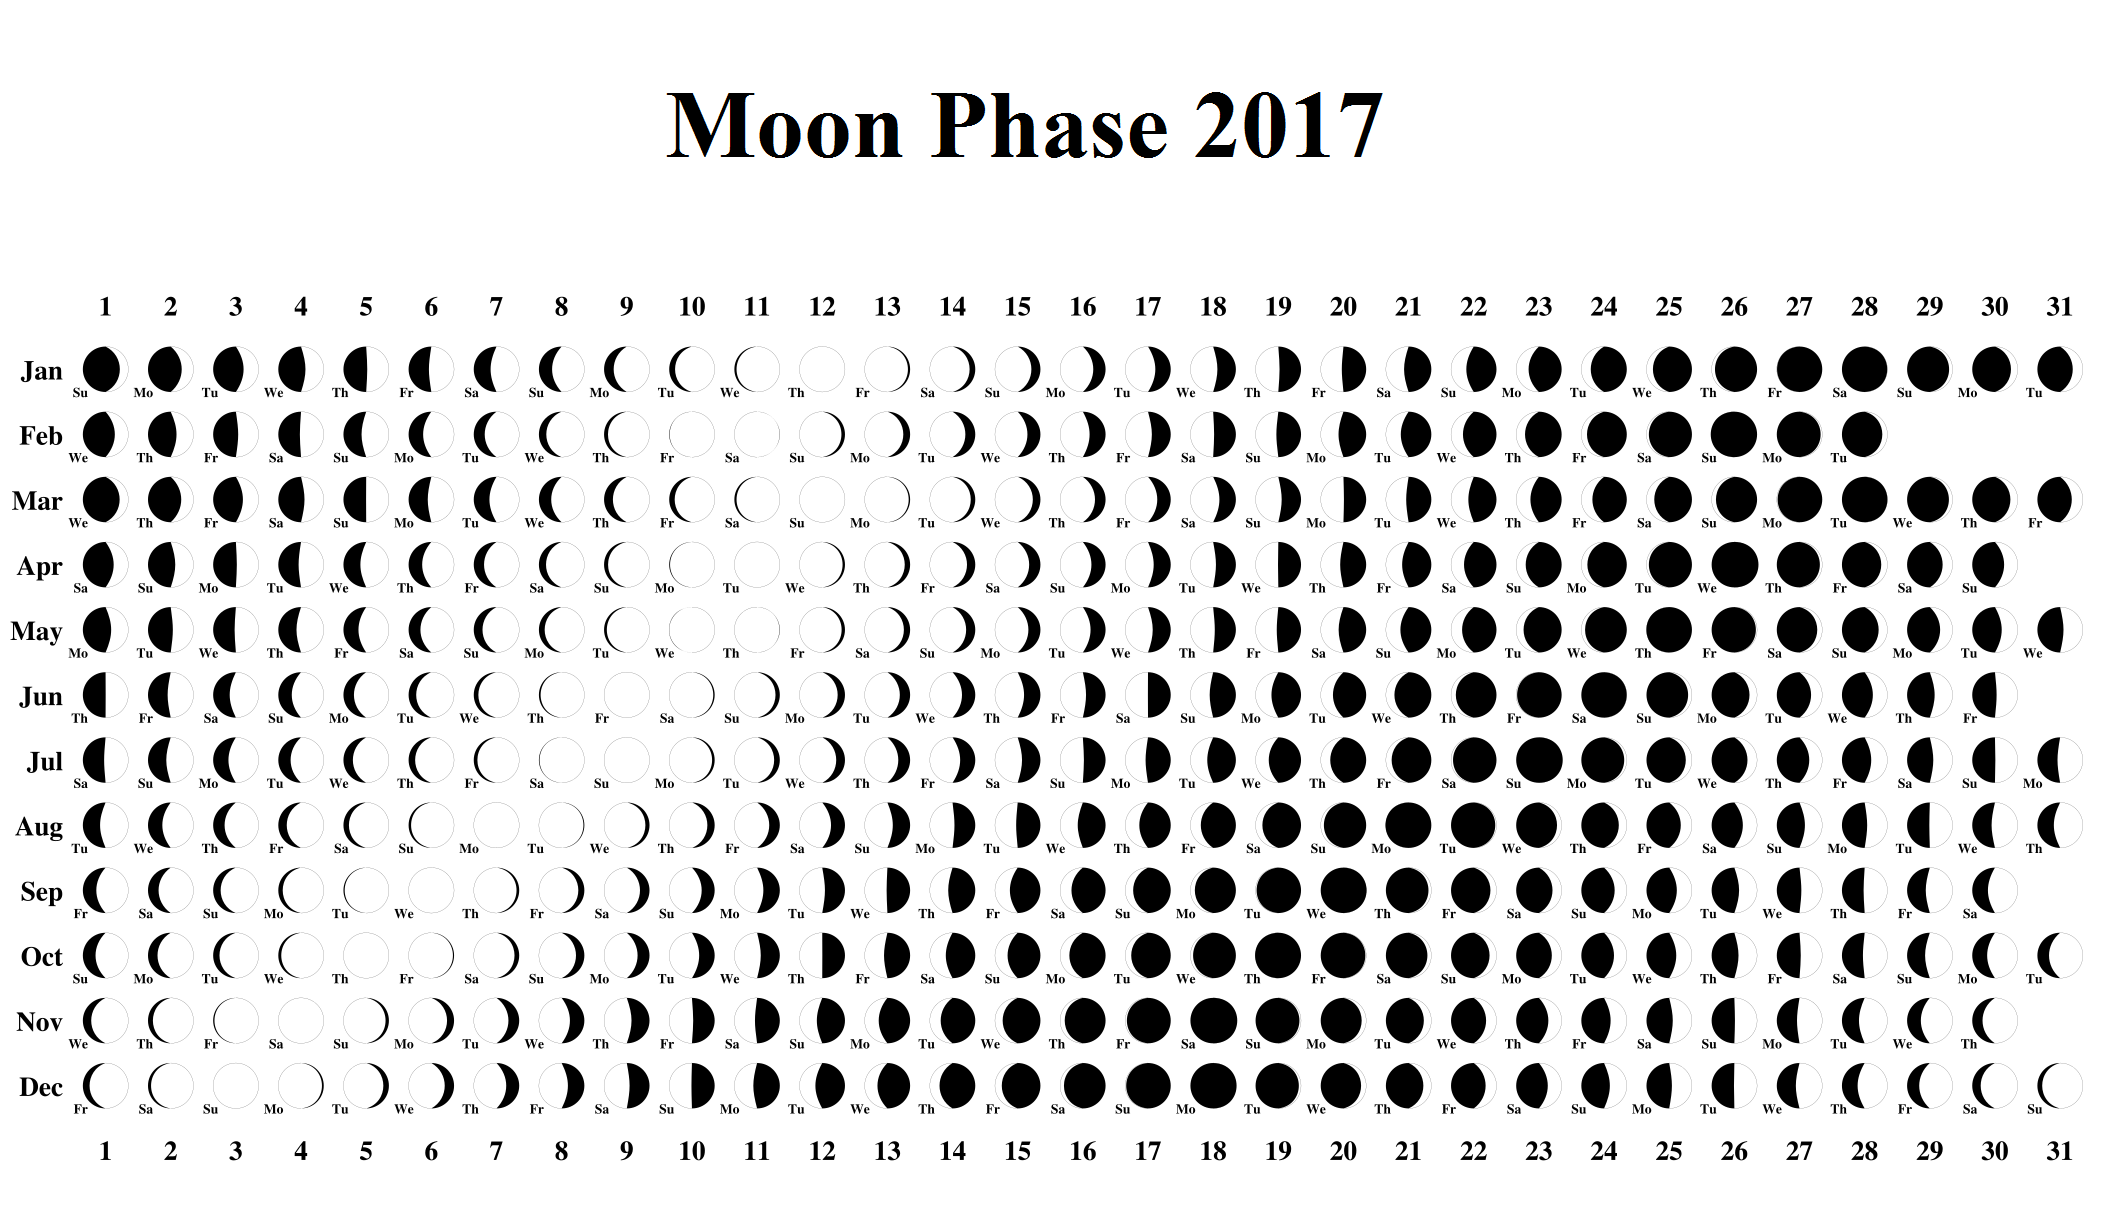 Moon Phase Calendar Lunar Template 2017 | Moon Phase Calendar 2017 ...